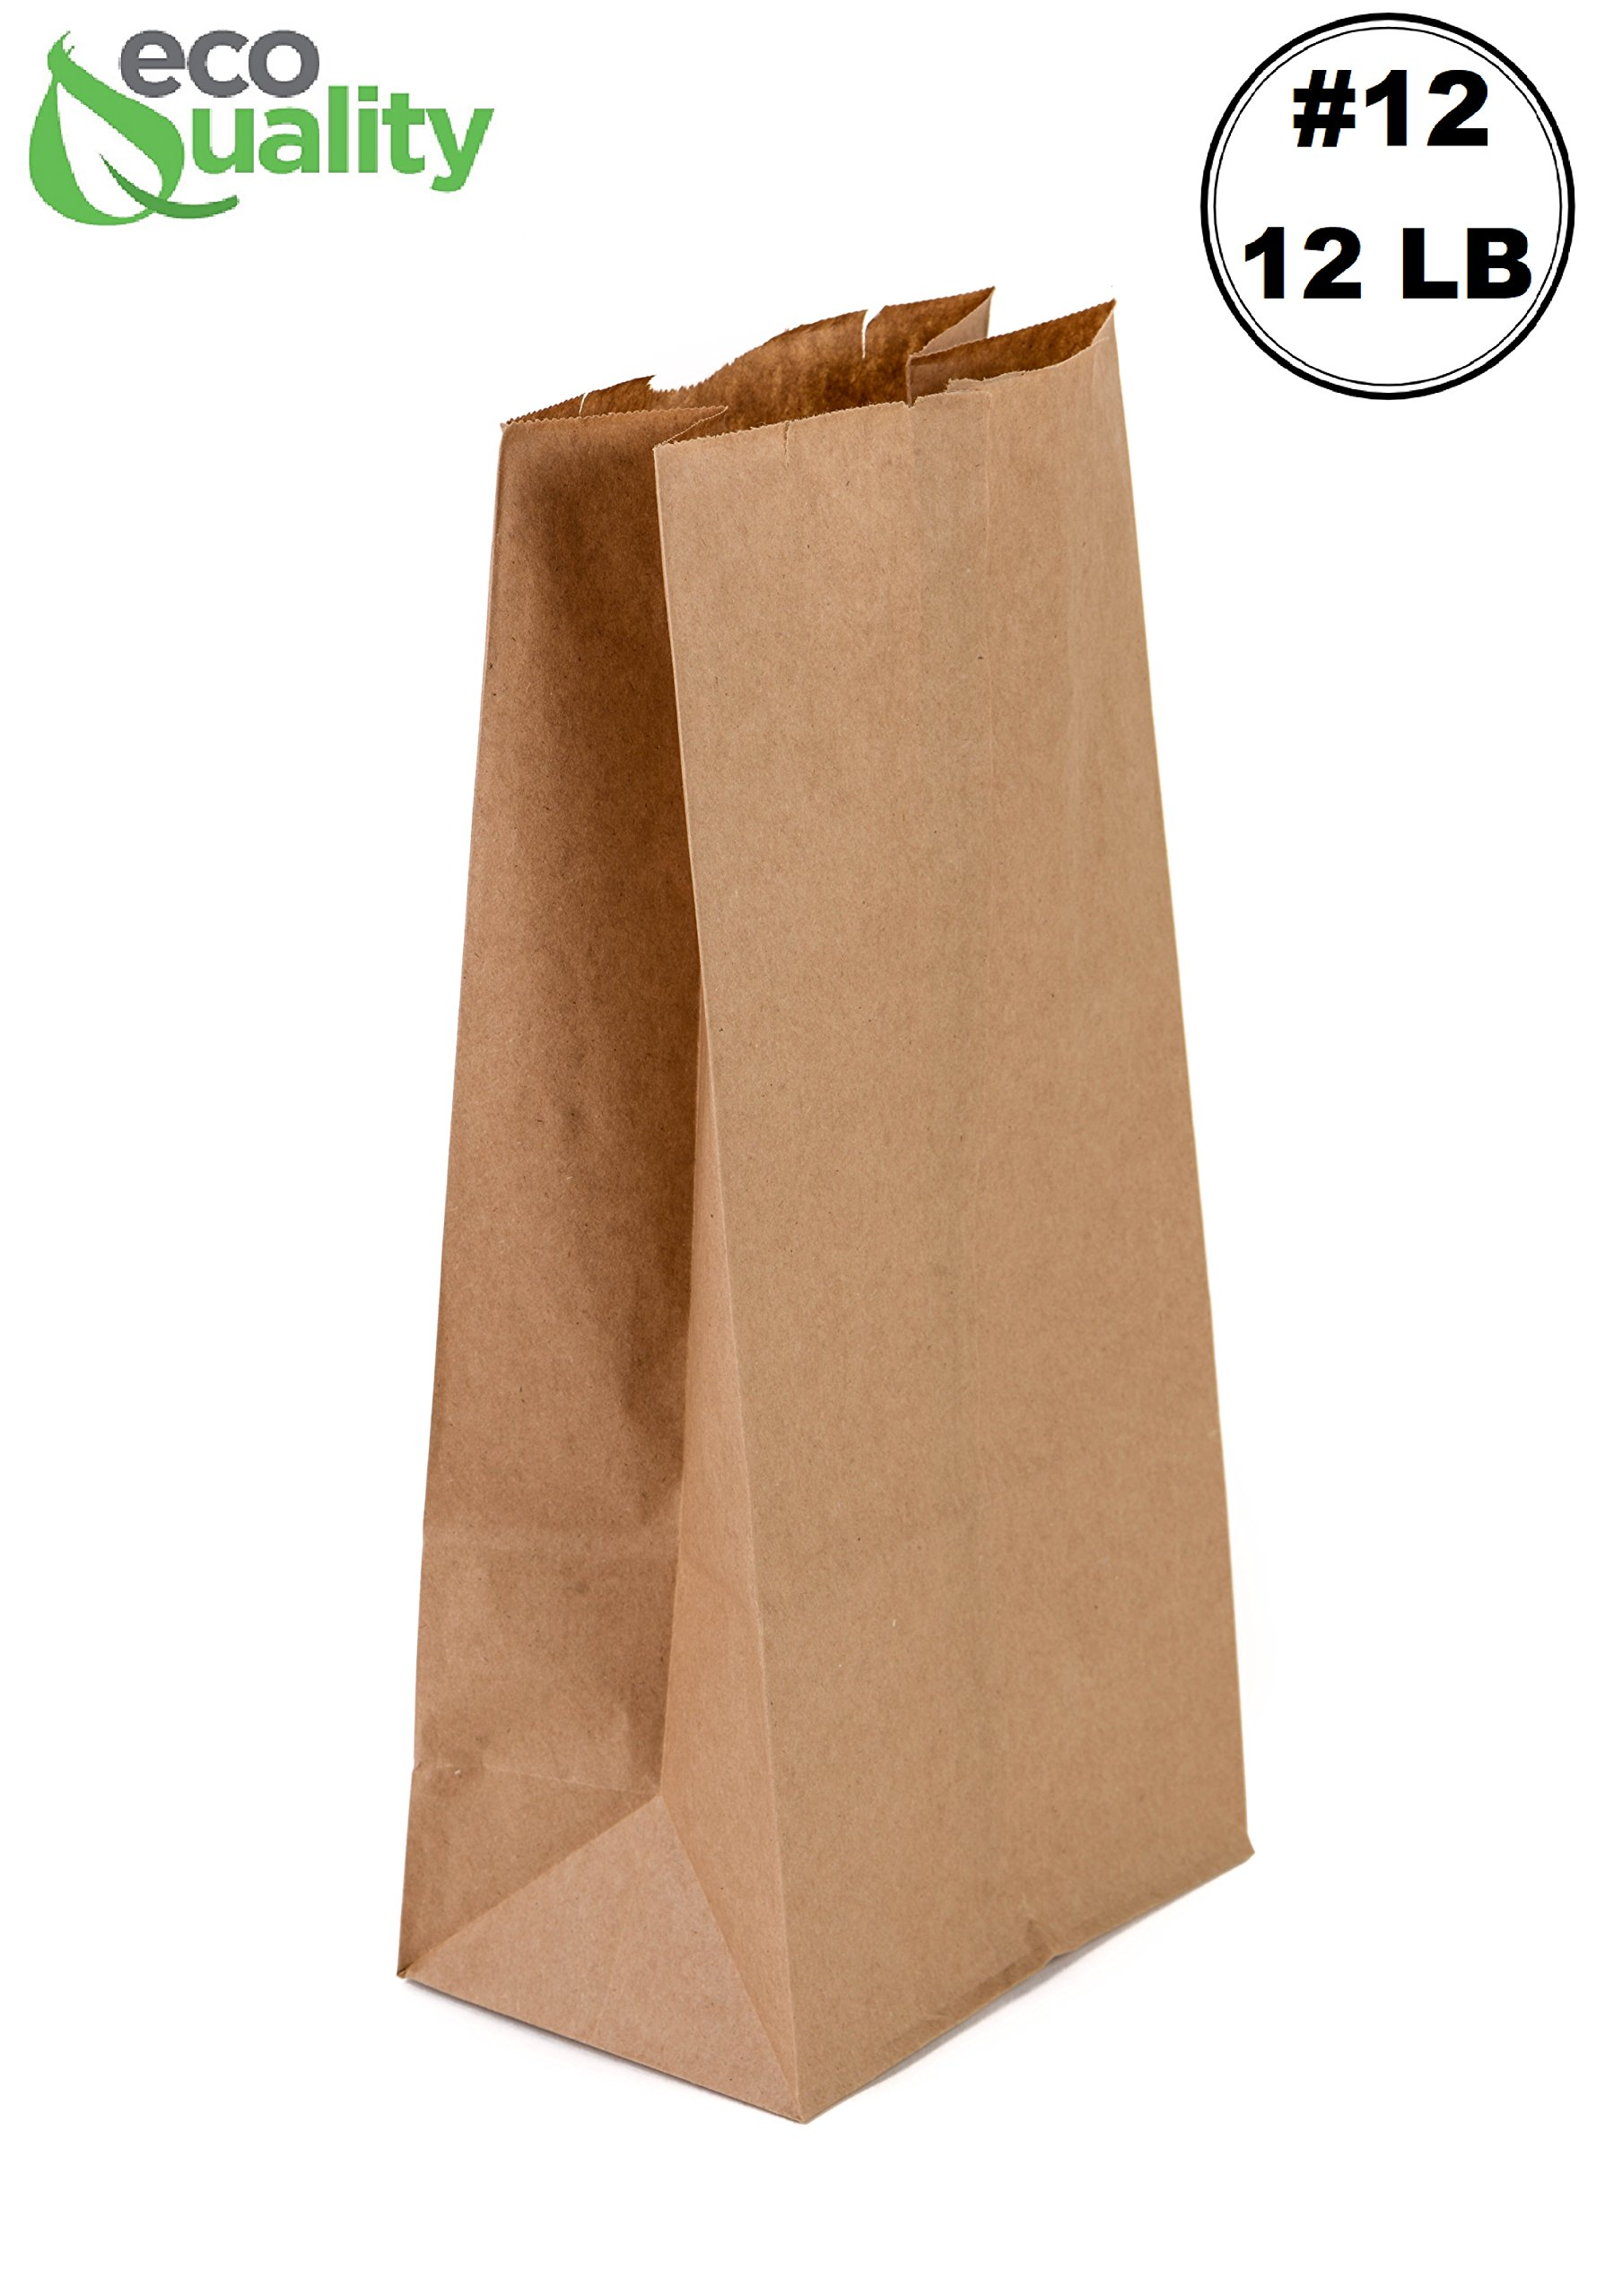 EcoQuality 1000 Brown Kraft Paper Bag (12 lb) Medium - Paper Lunch Bags, Small Snacks, Gift Bags, Grocery, Merchandise, Party Bags (7-1/16 x 4-1/2 x 13-3/4'') (12 Pound Capacity)